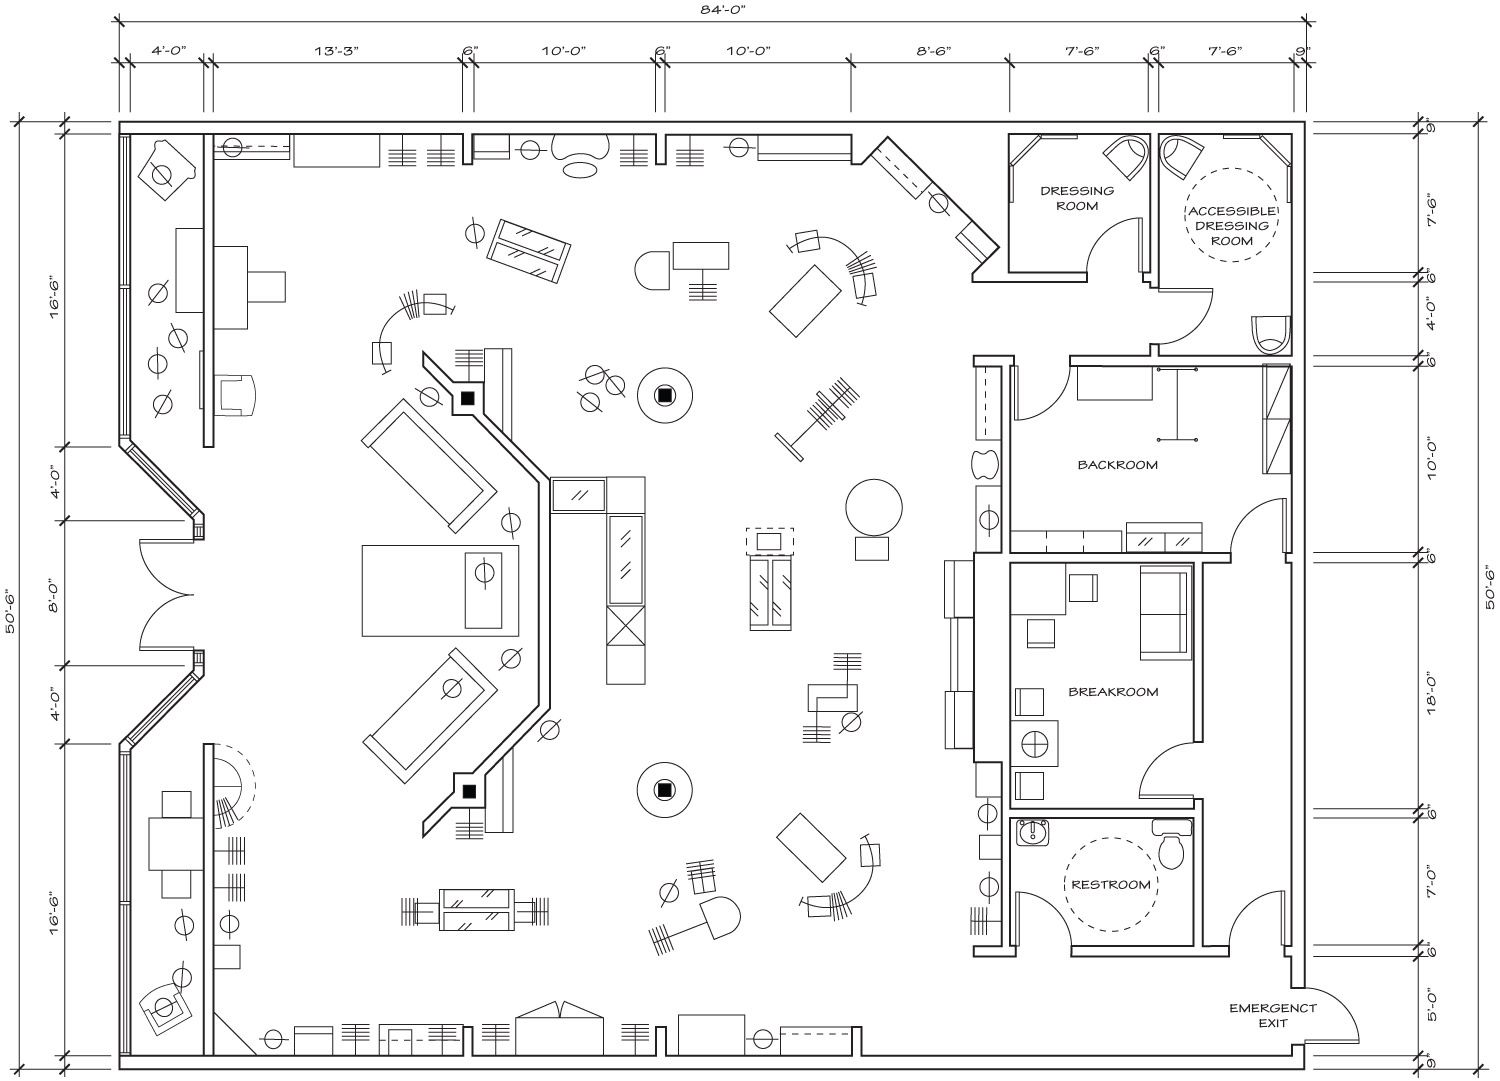 Retail_floor_plan   Google Search · Retail DisplaysShop DisplaysStore  LayoutRetail ...